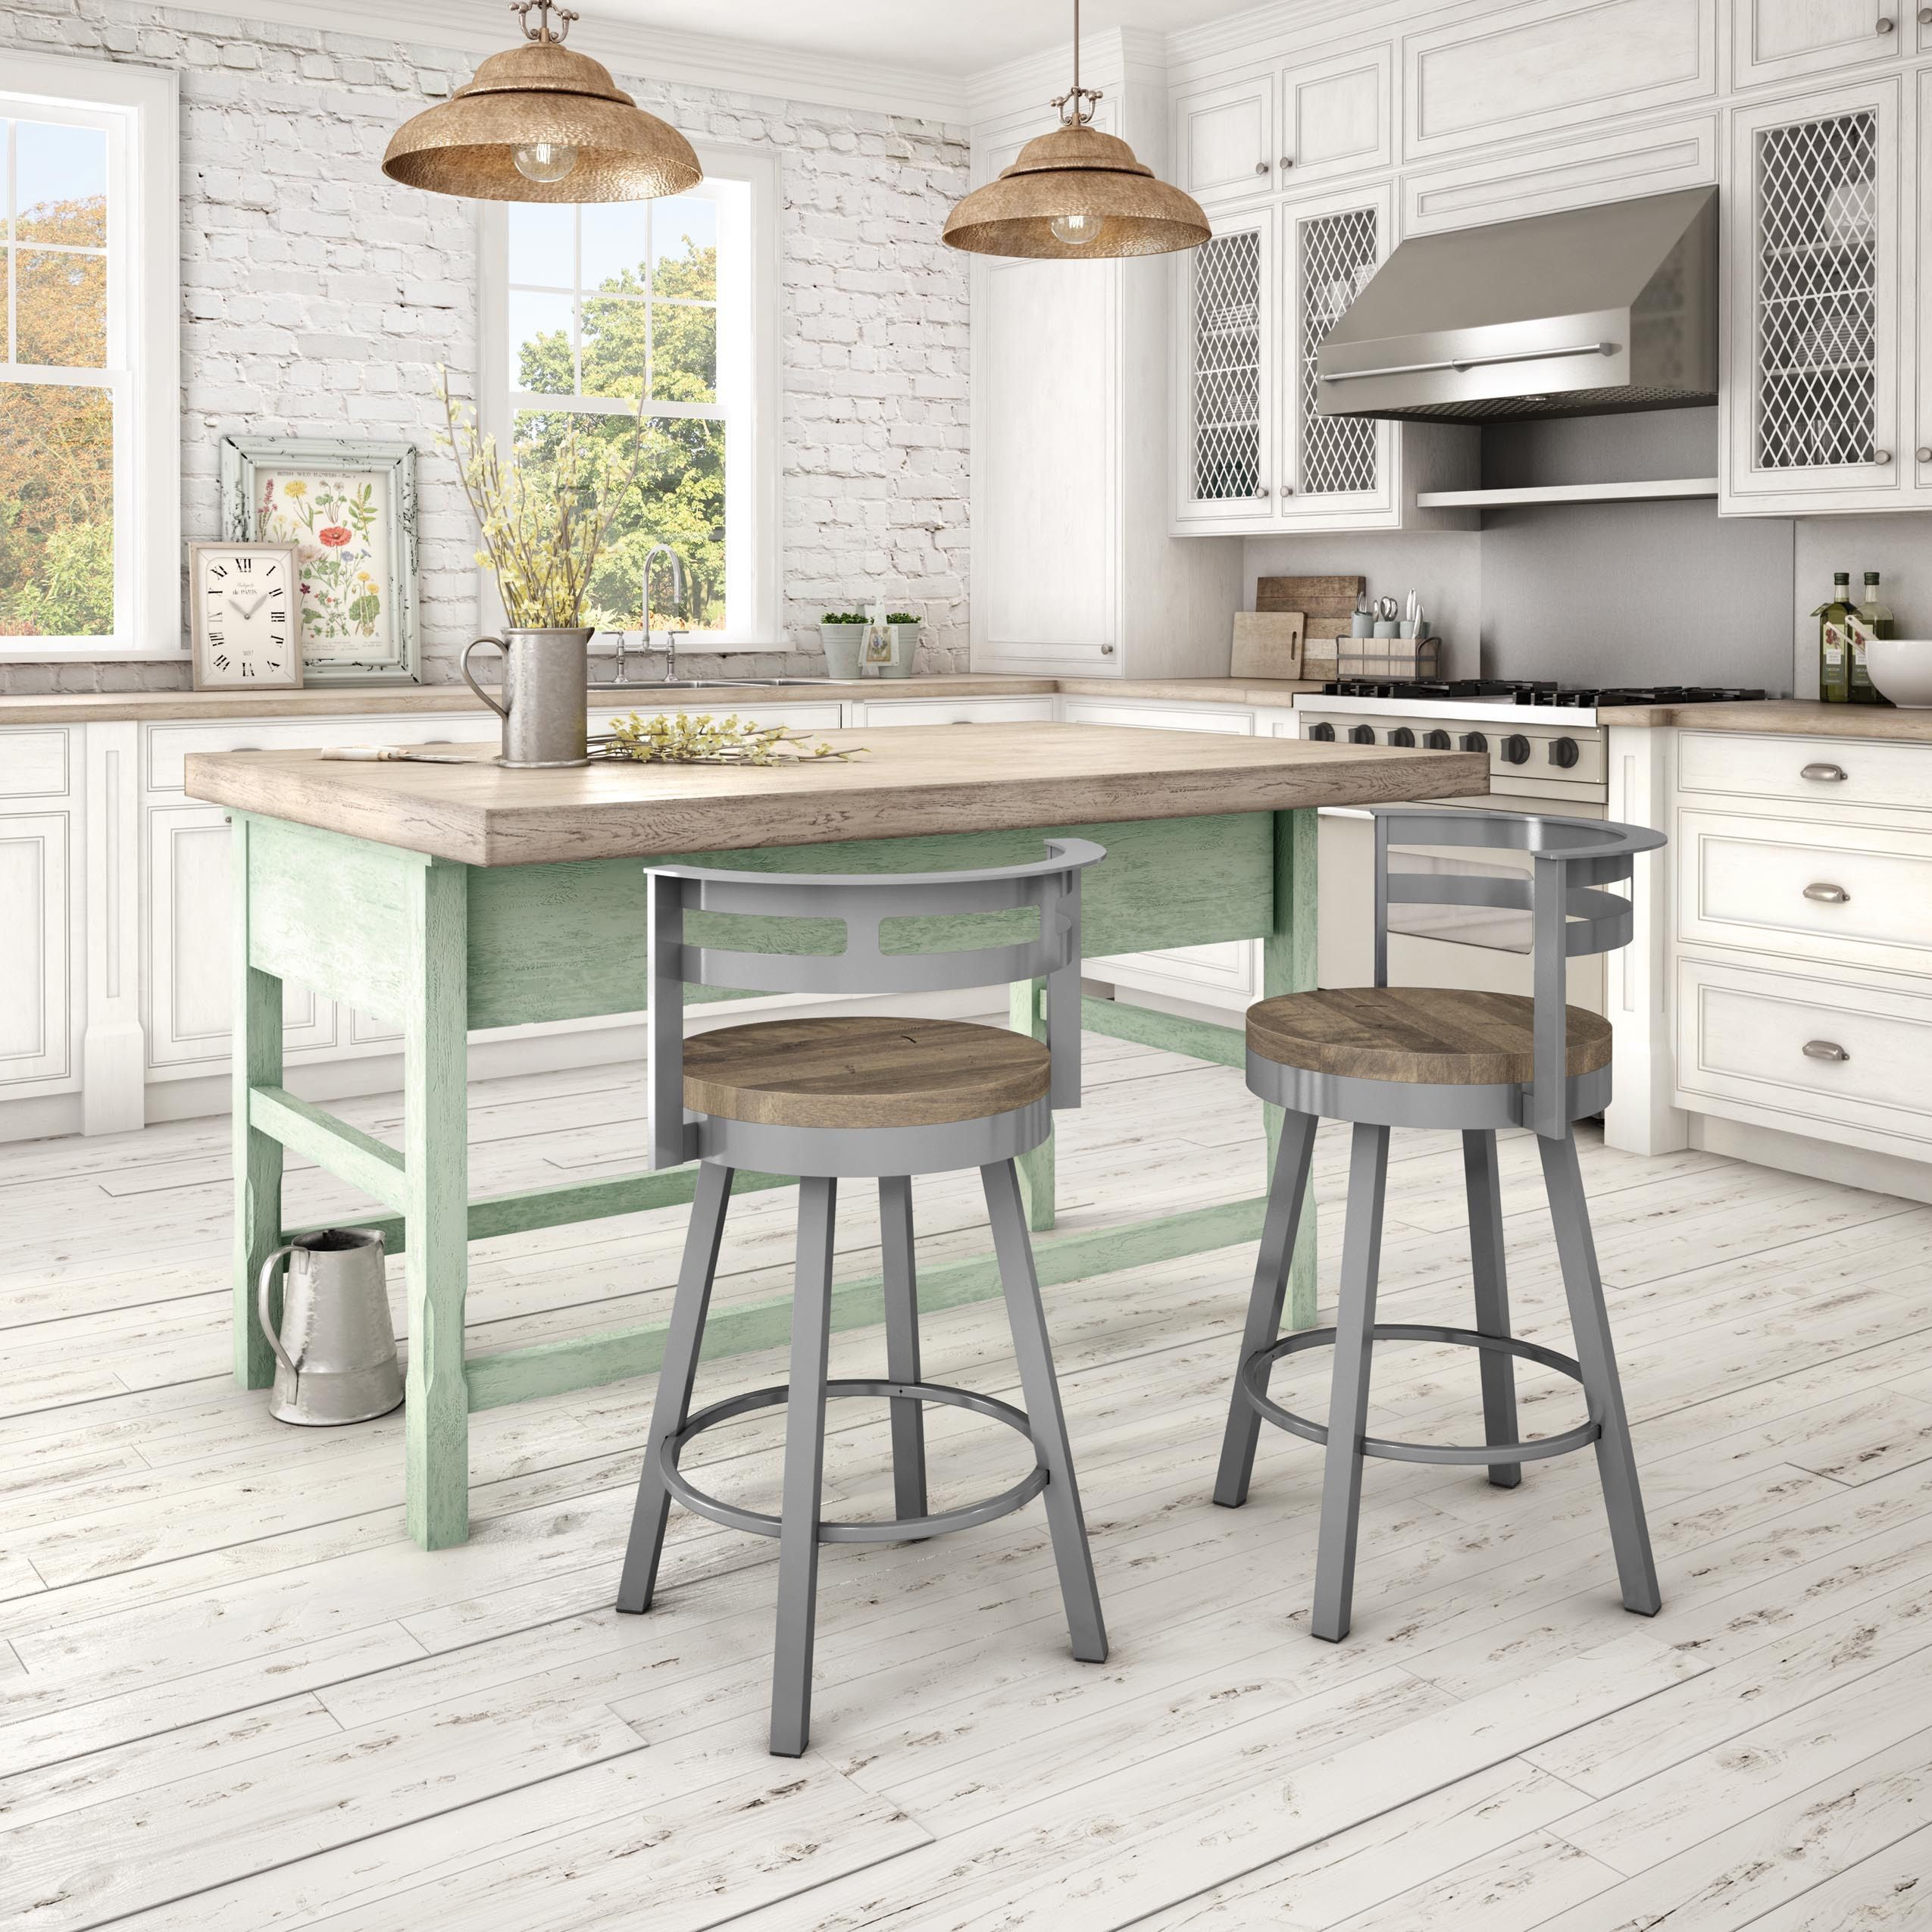 amisco vector swivel metal barstool with distressed wood seat by amisco - Amisco Bar Stools